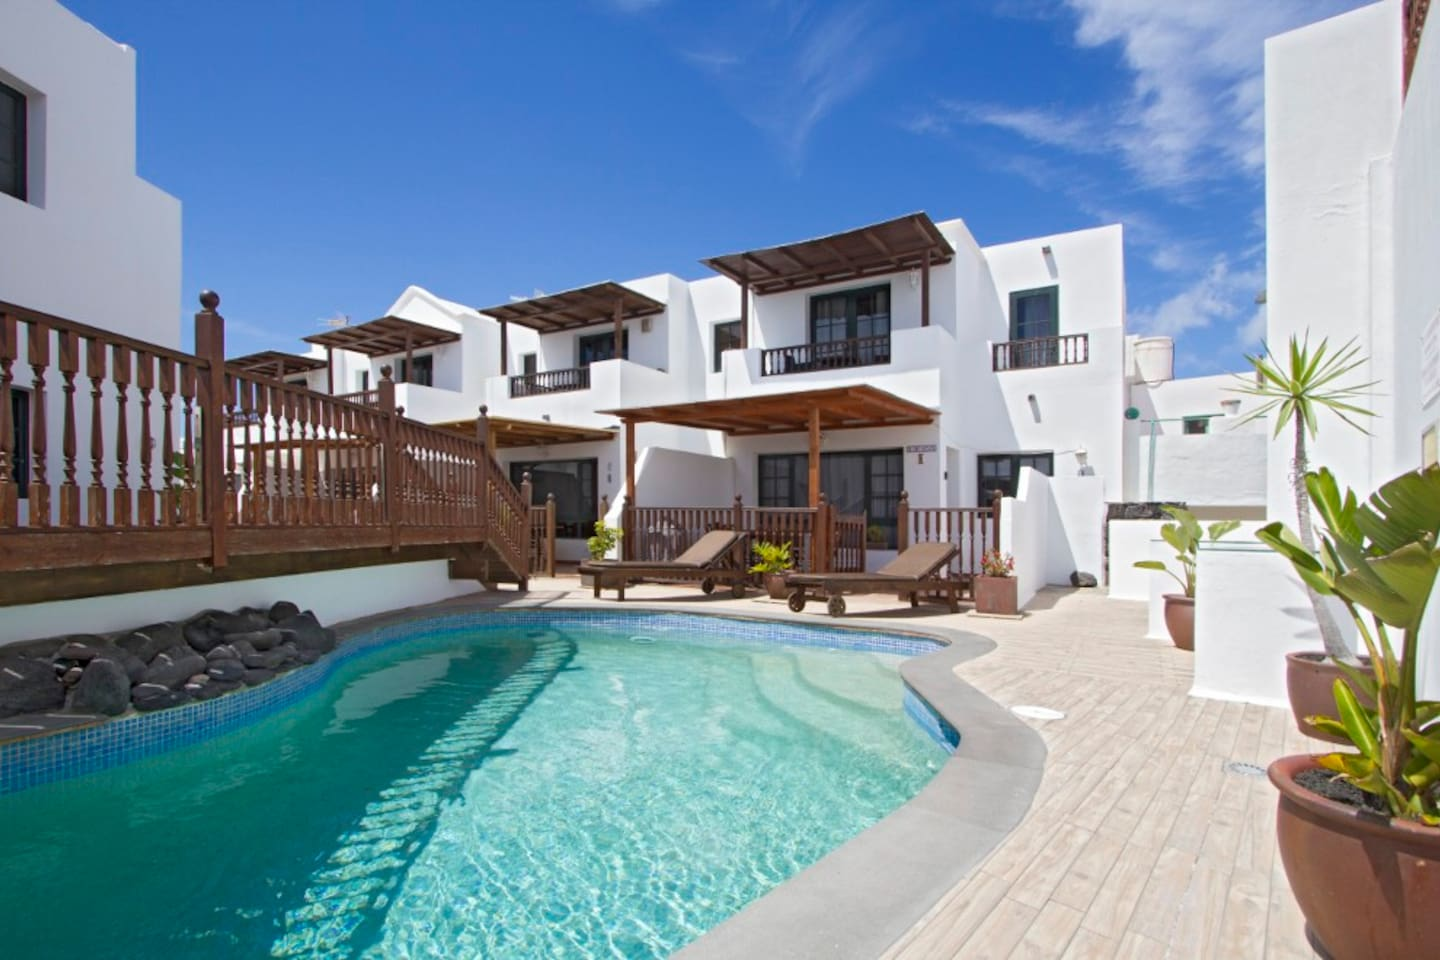 Pool area, with solar heated pool and sunbeds. Viewing the front of the properties.